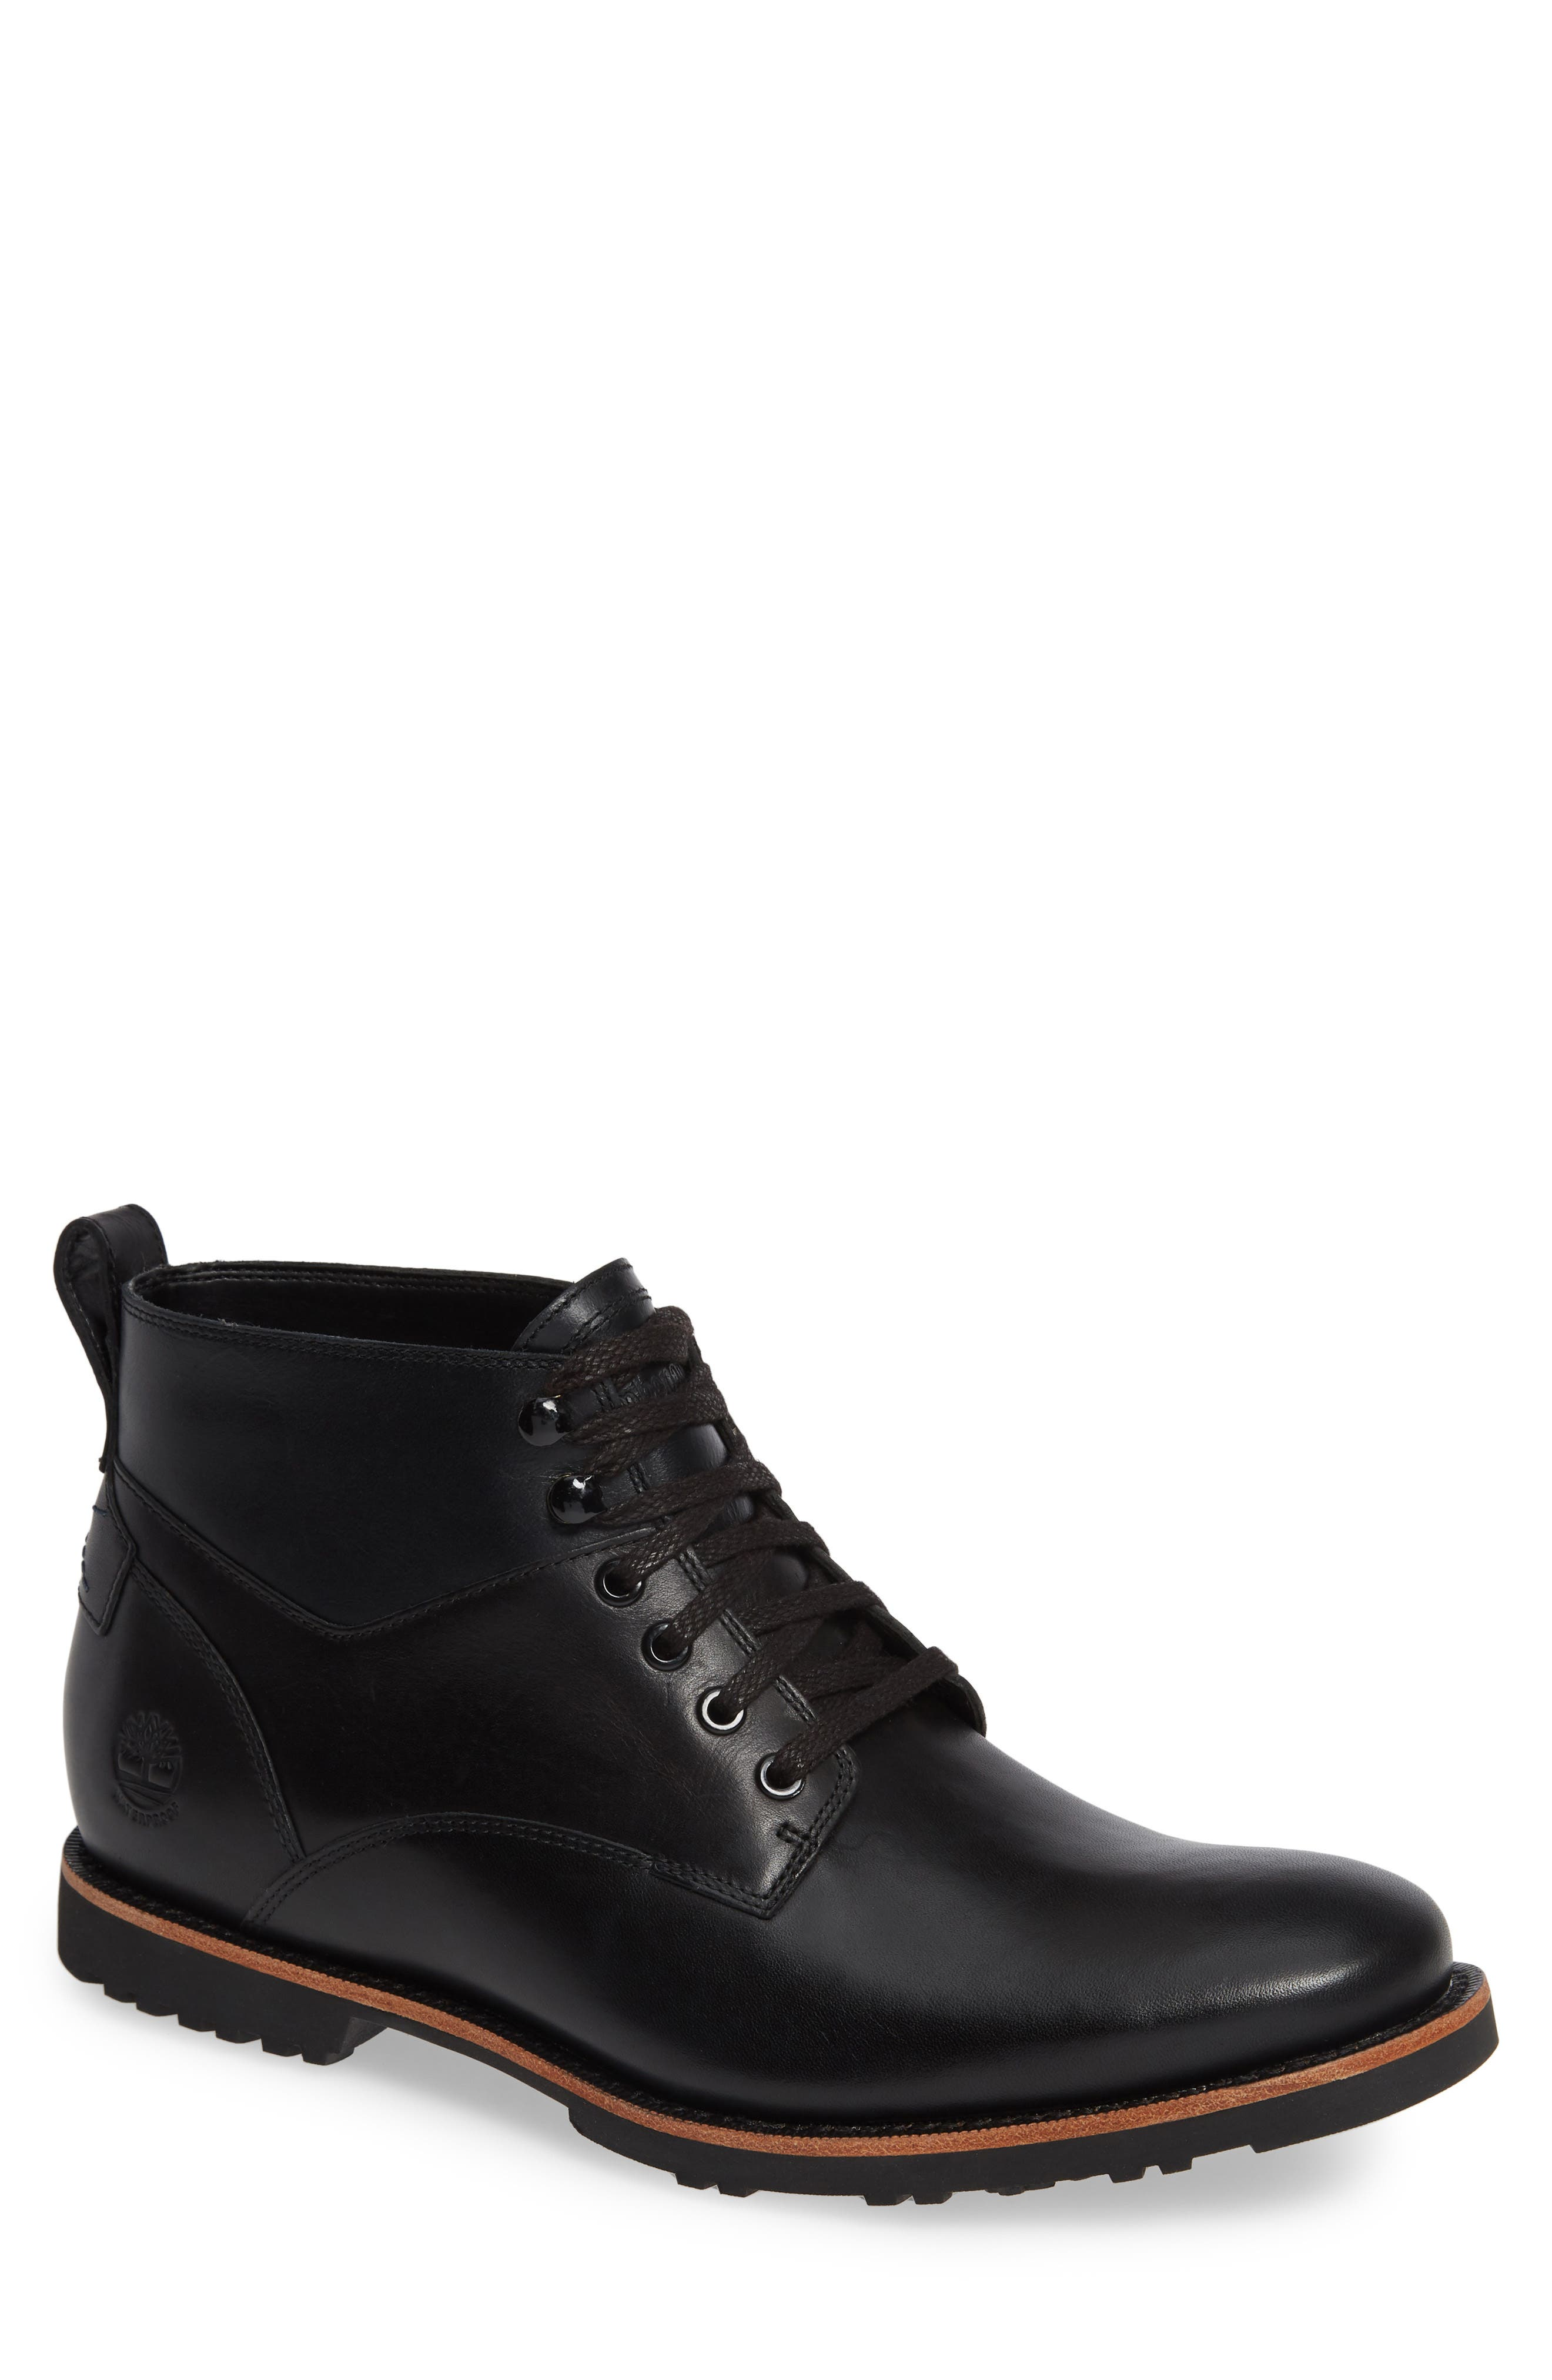 Kendrick Waterproof Chukka Boot,                         Main,                         color, JET BLACK/ NAVY LEATHER